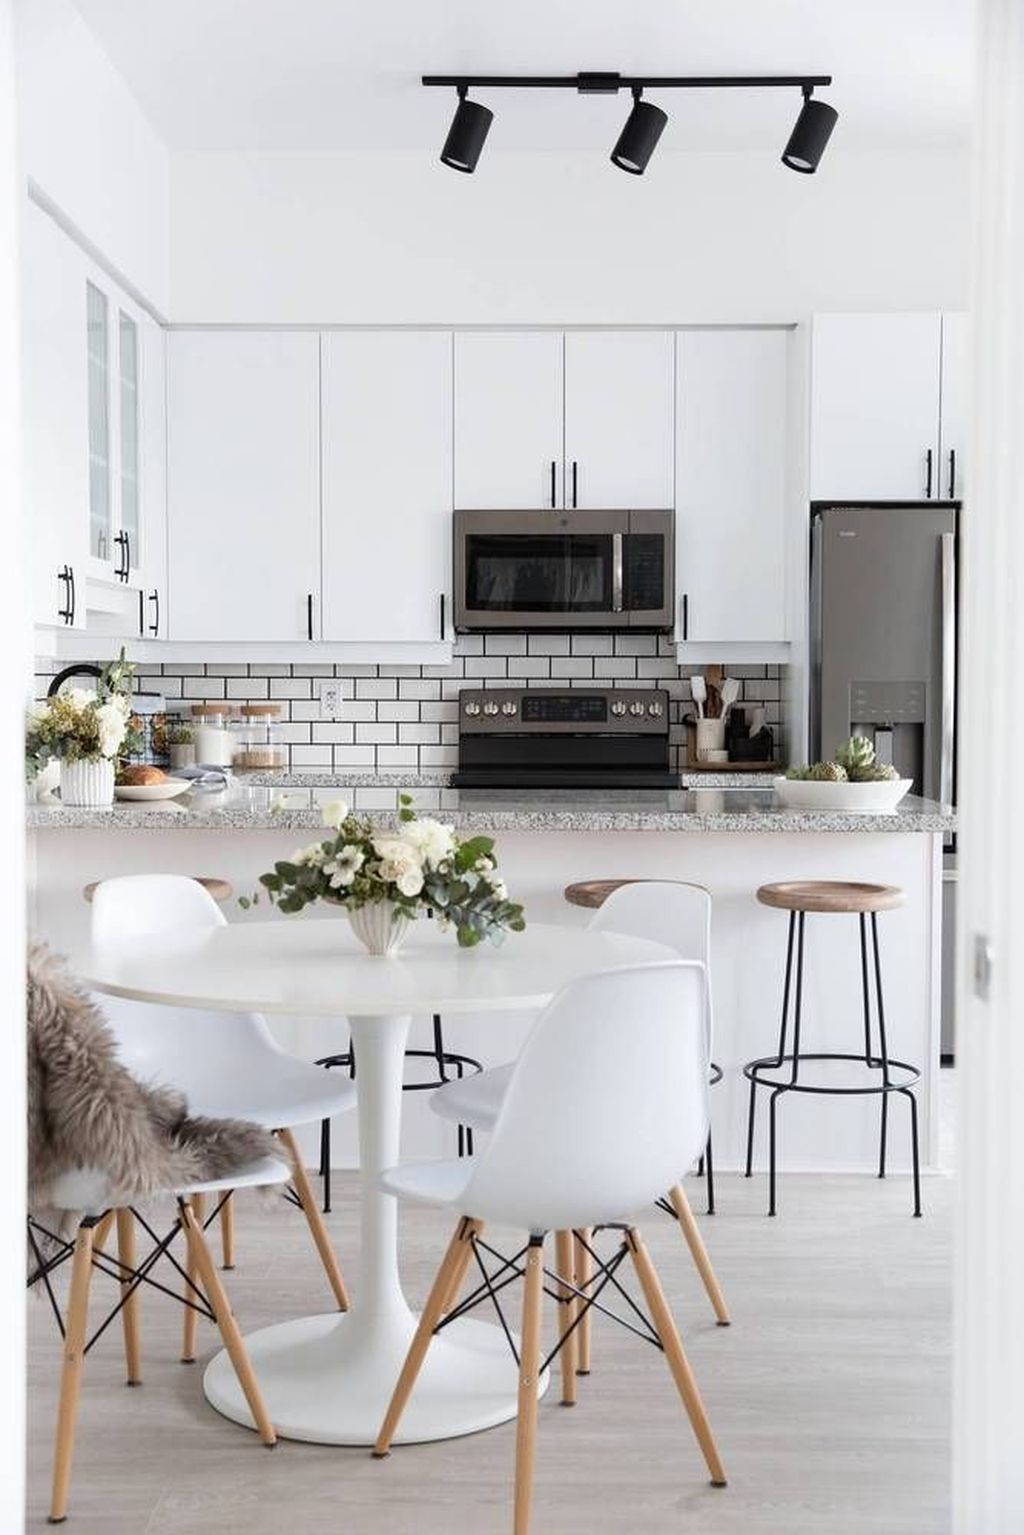 47 Amazing Kitchen And Dining Room Designs For Small Spaces Small Apartment Kitchen Dining Room Small Kitchen Decor Apartment